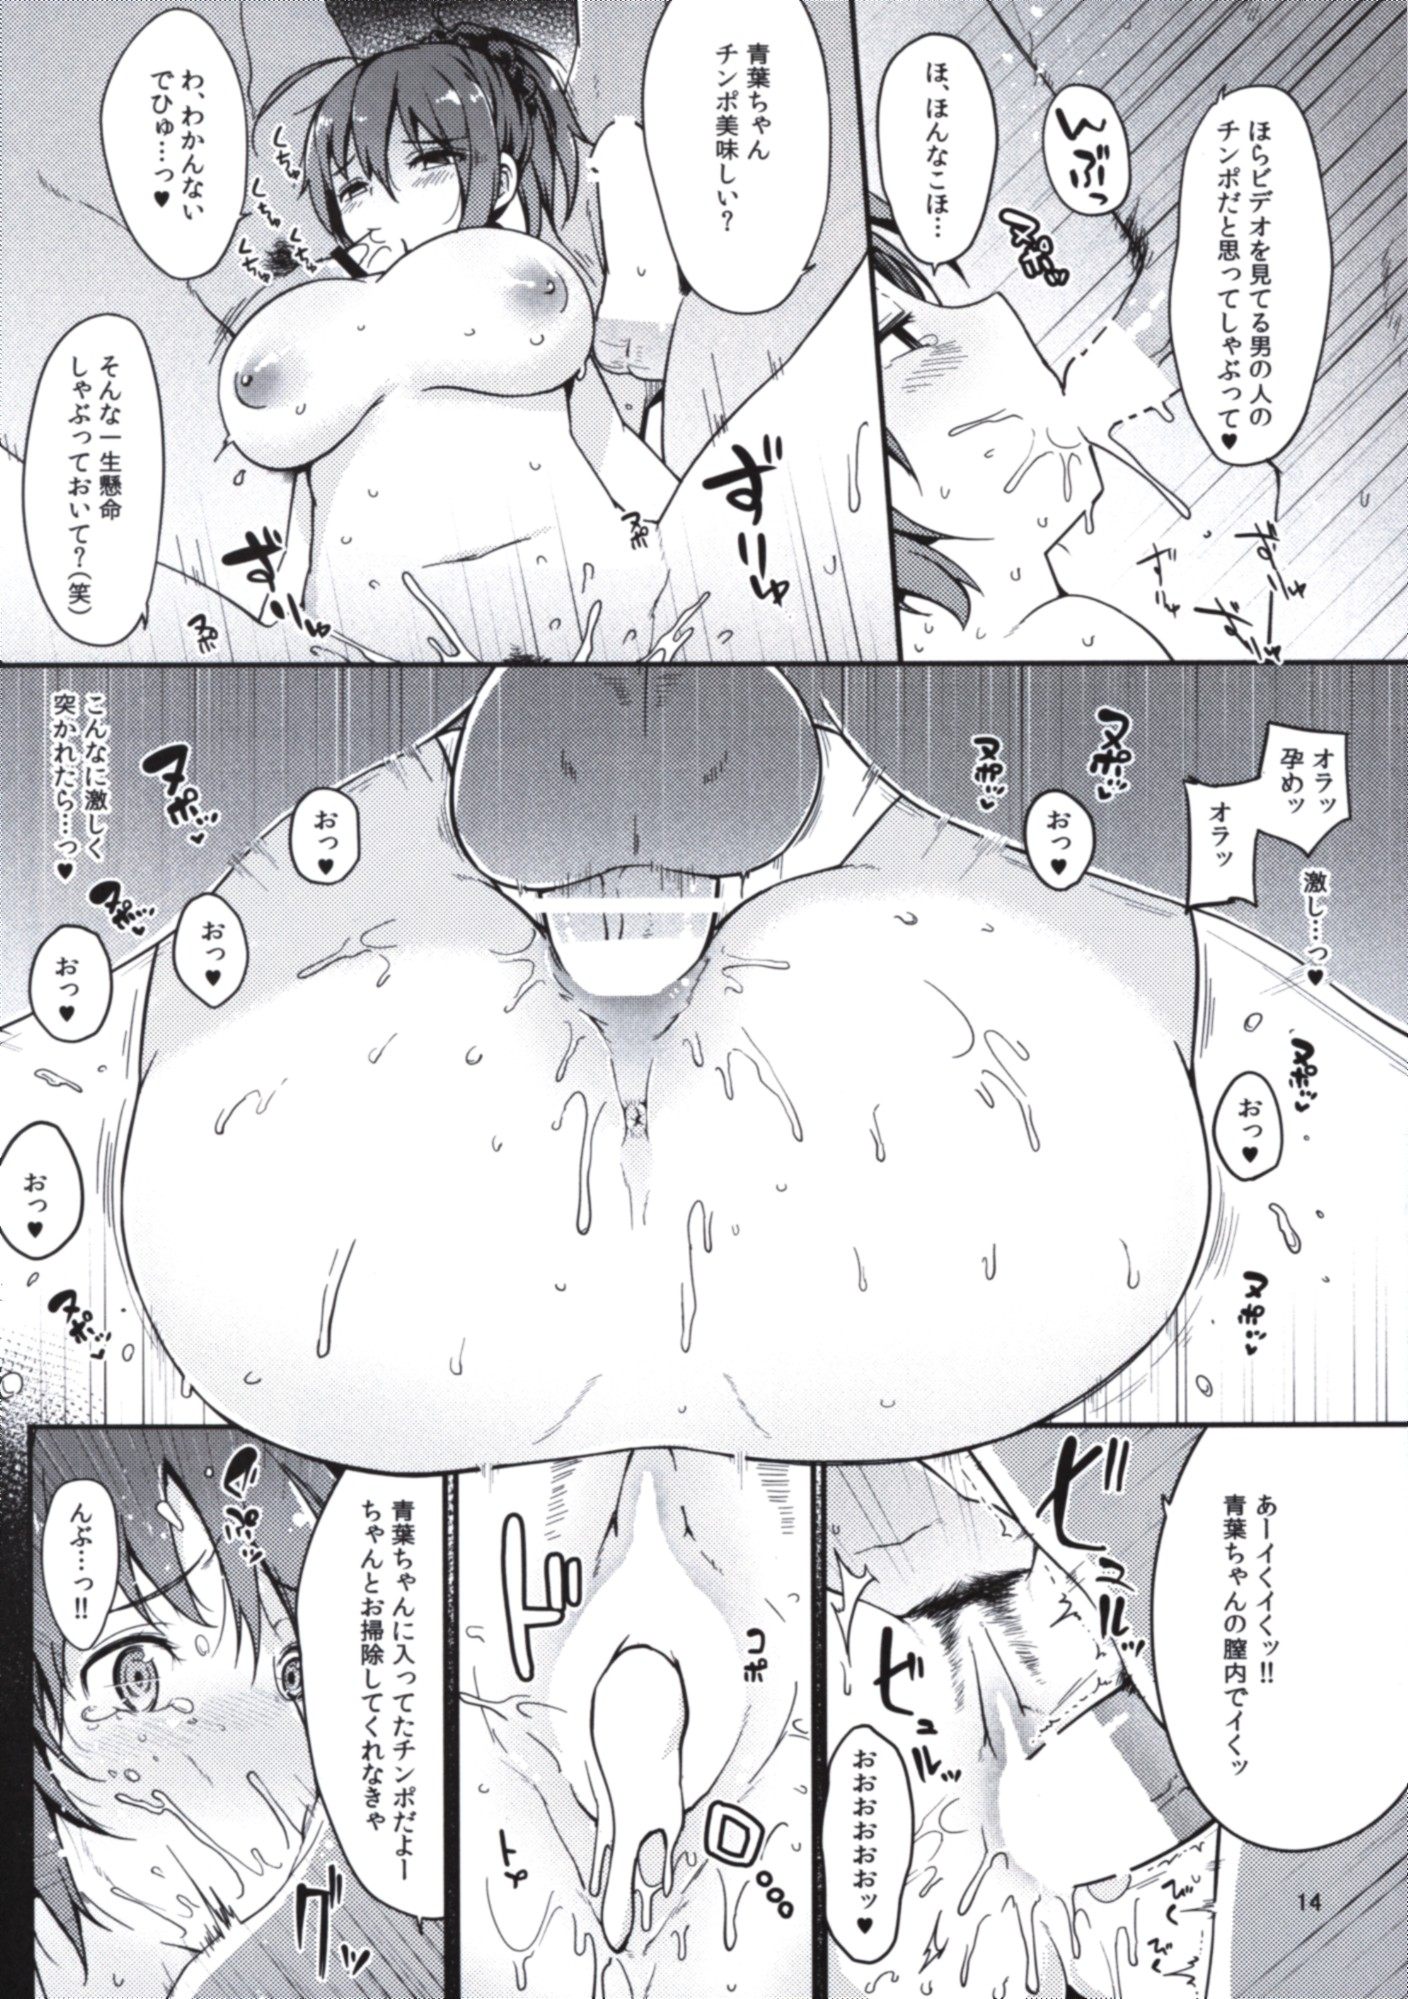 [Adult] Doujinshi - Kantai Collection (Pyrolagnia ecstasy) / 適齢期に食中毒